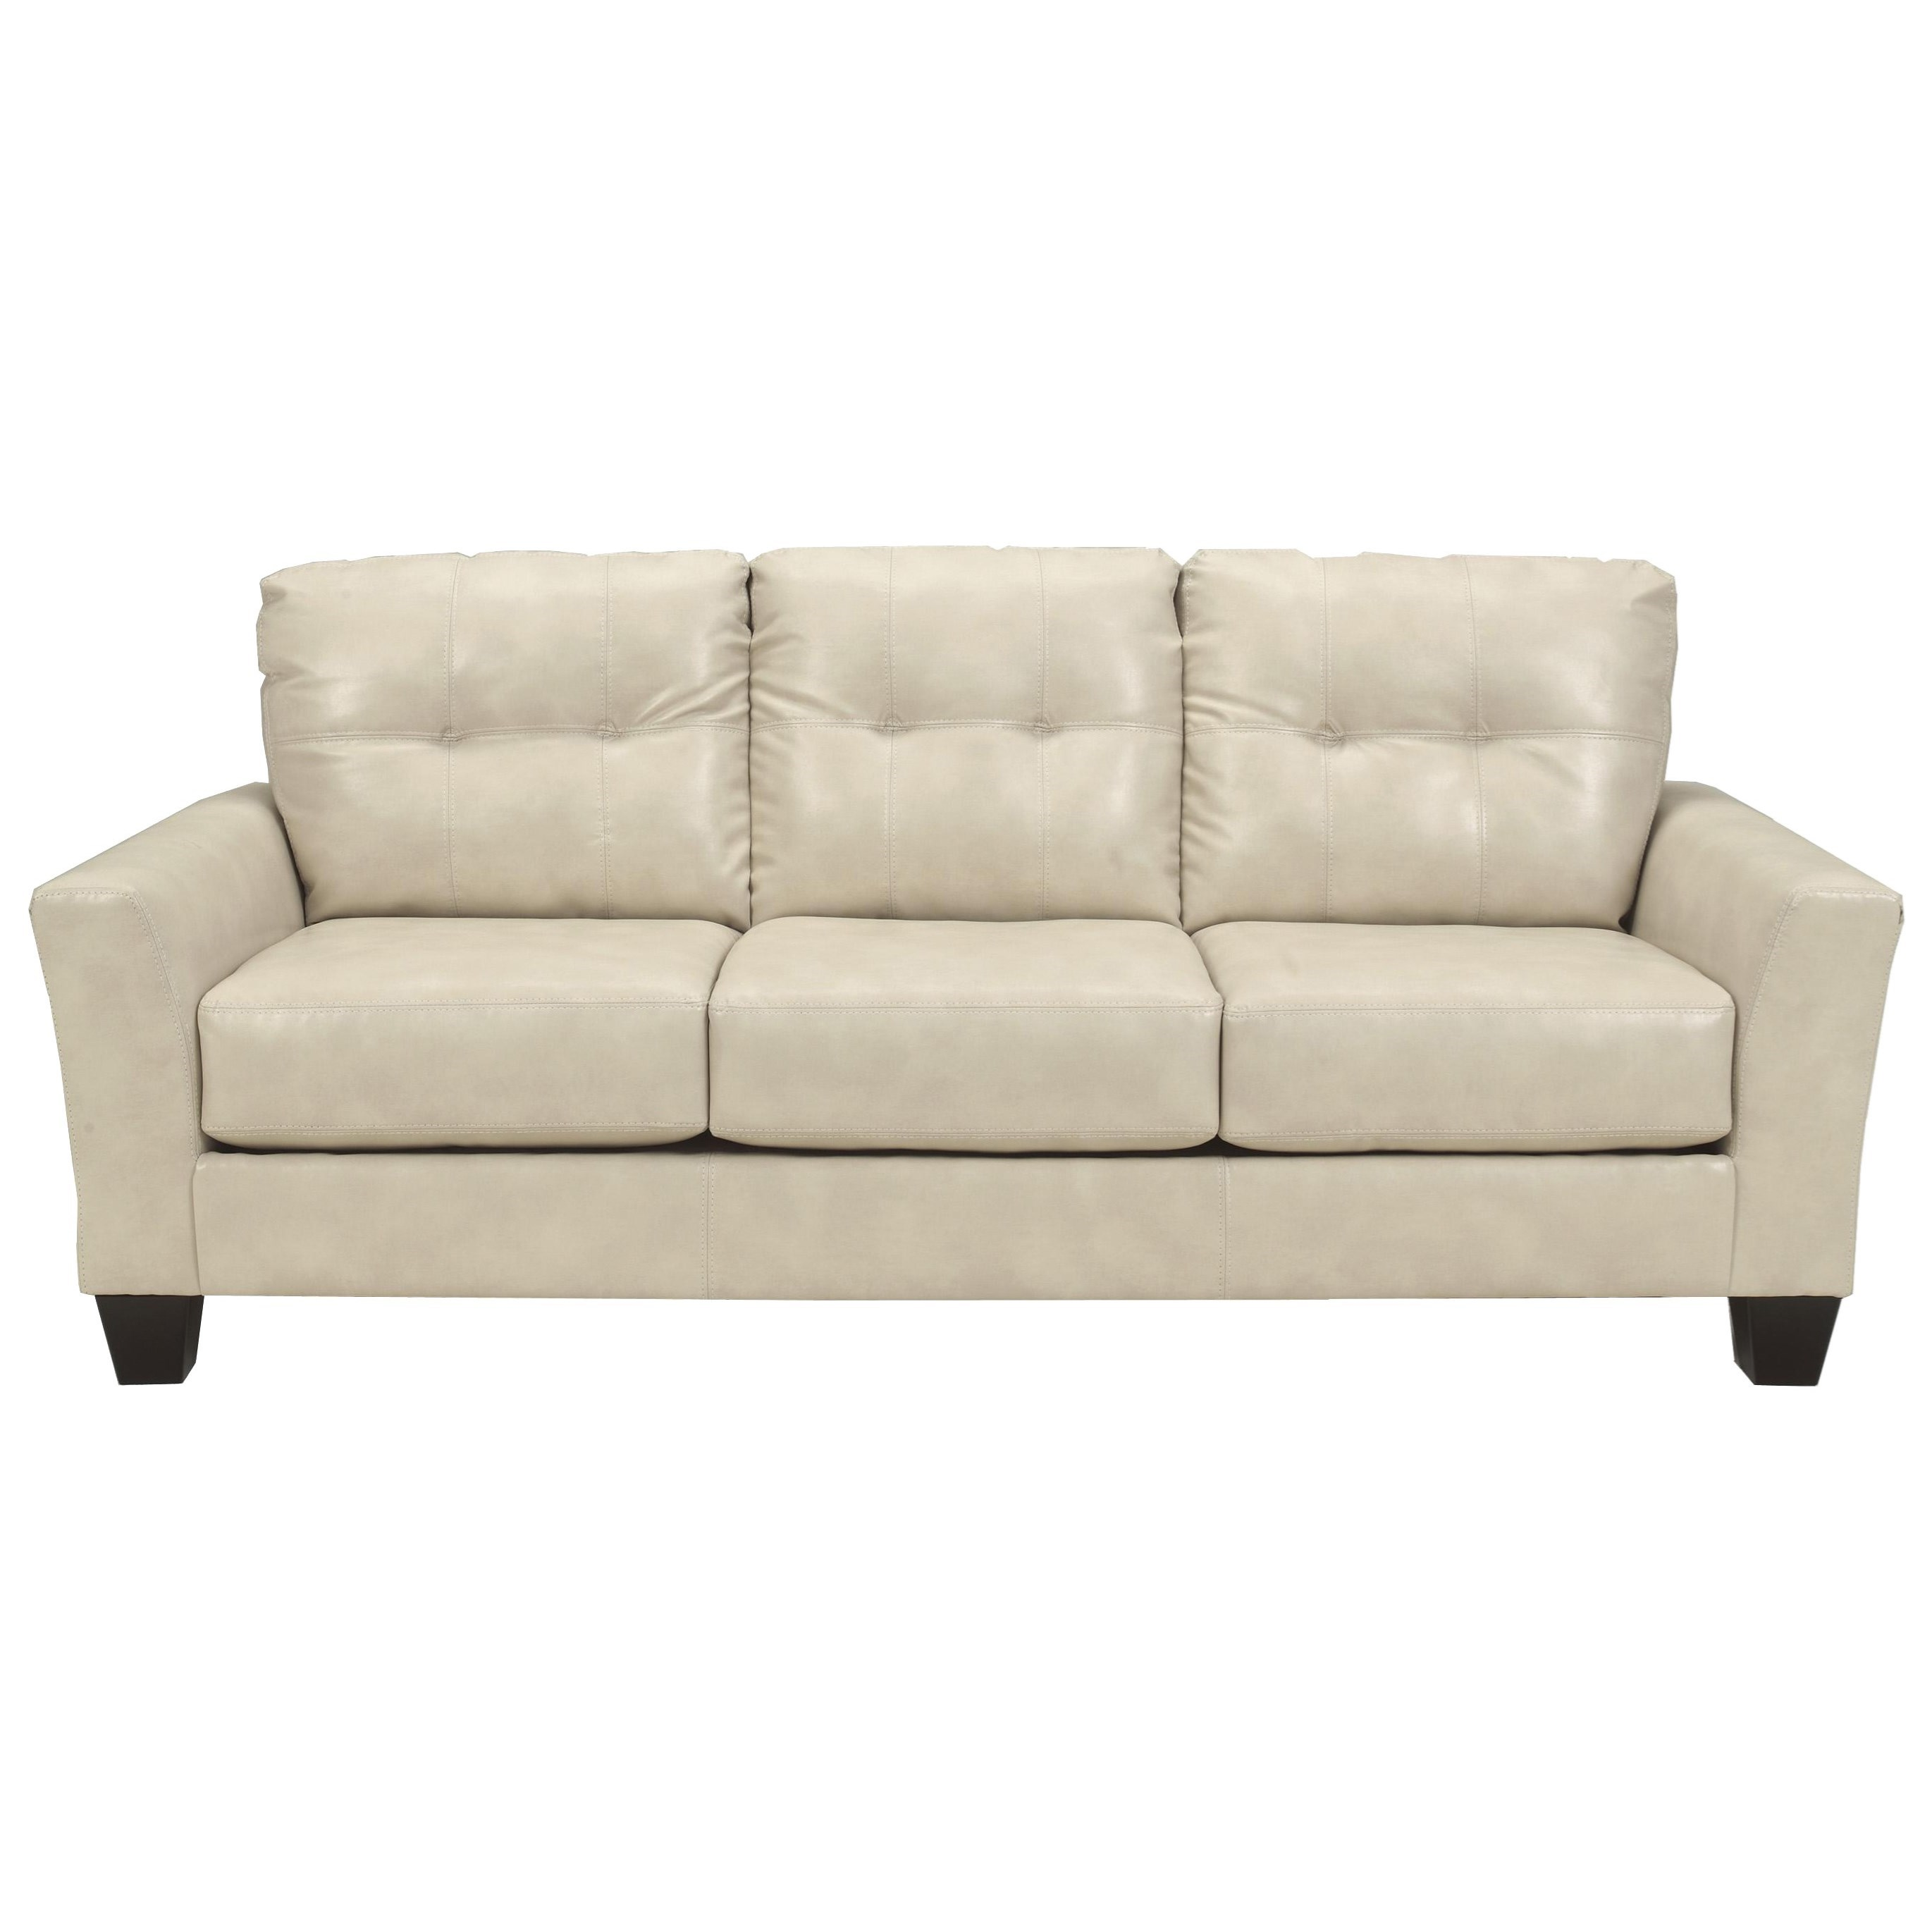 Benchcraft Paulie DuraBlend Taupe Contemporary Sofa with Tufted